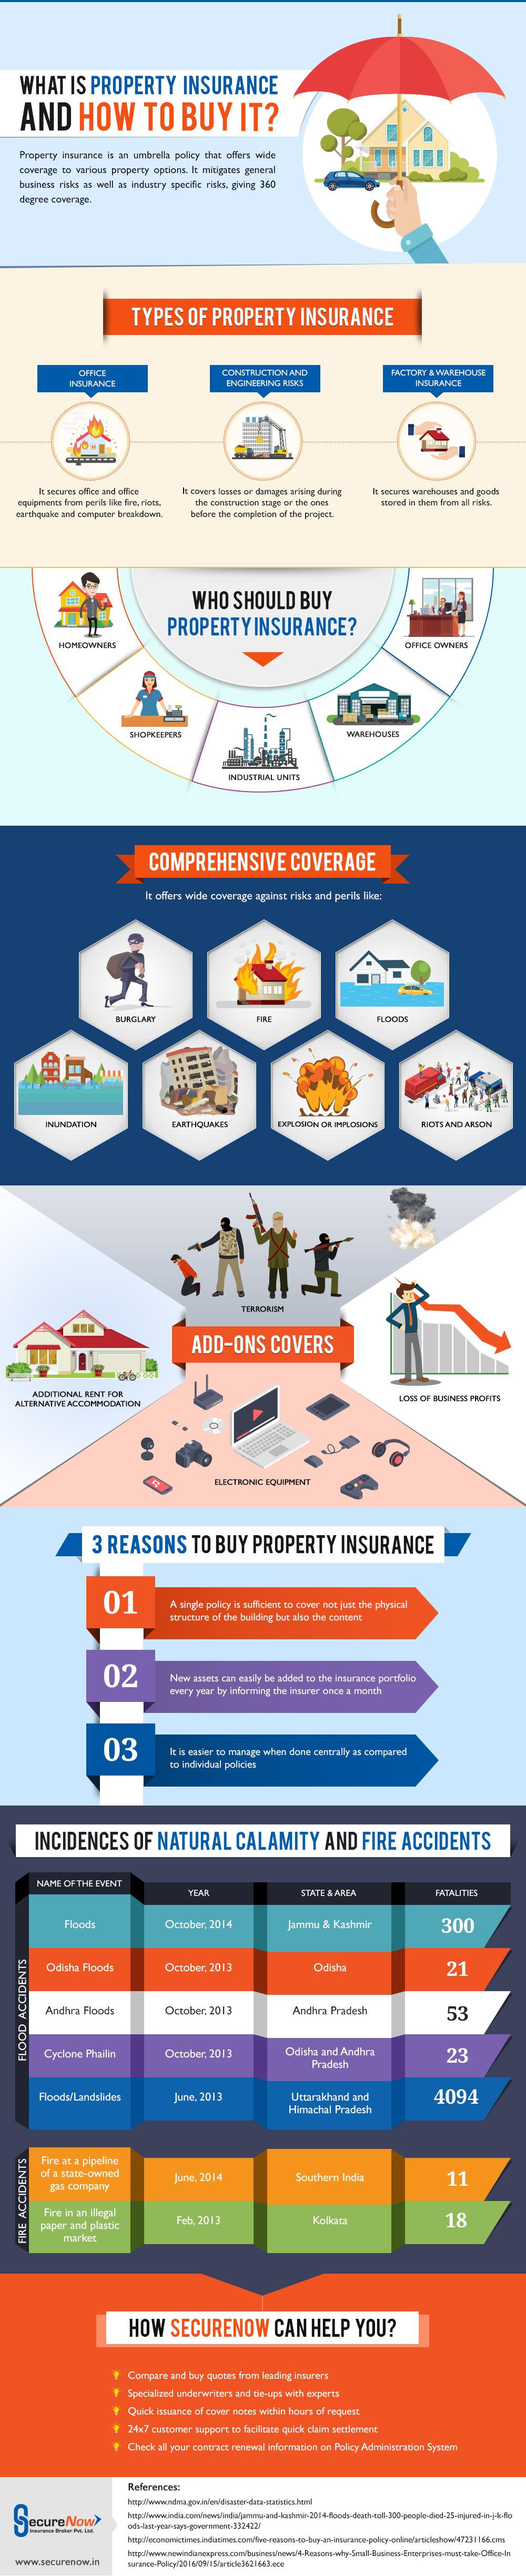 what-is-property-insurance-and-how-to-buy-it